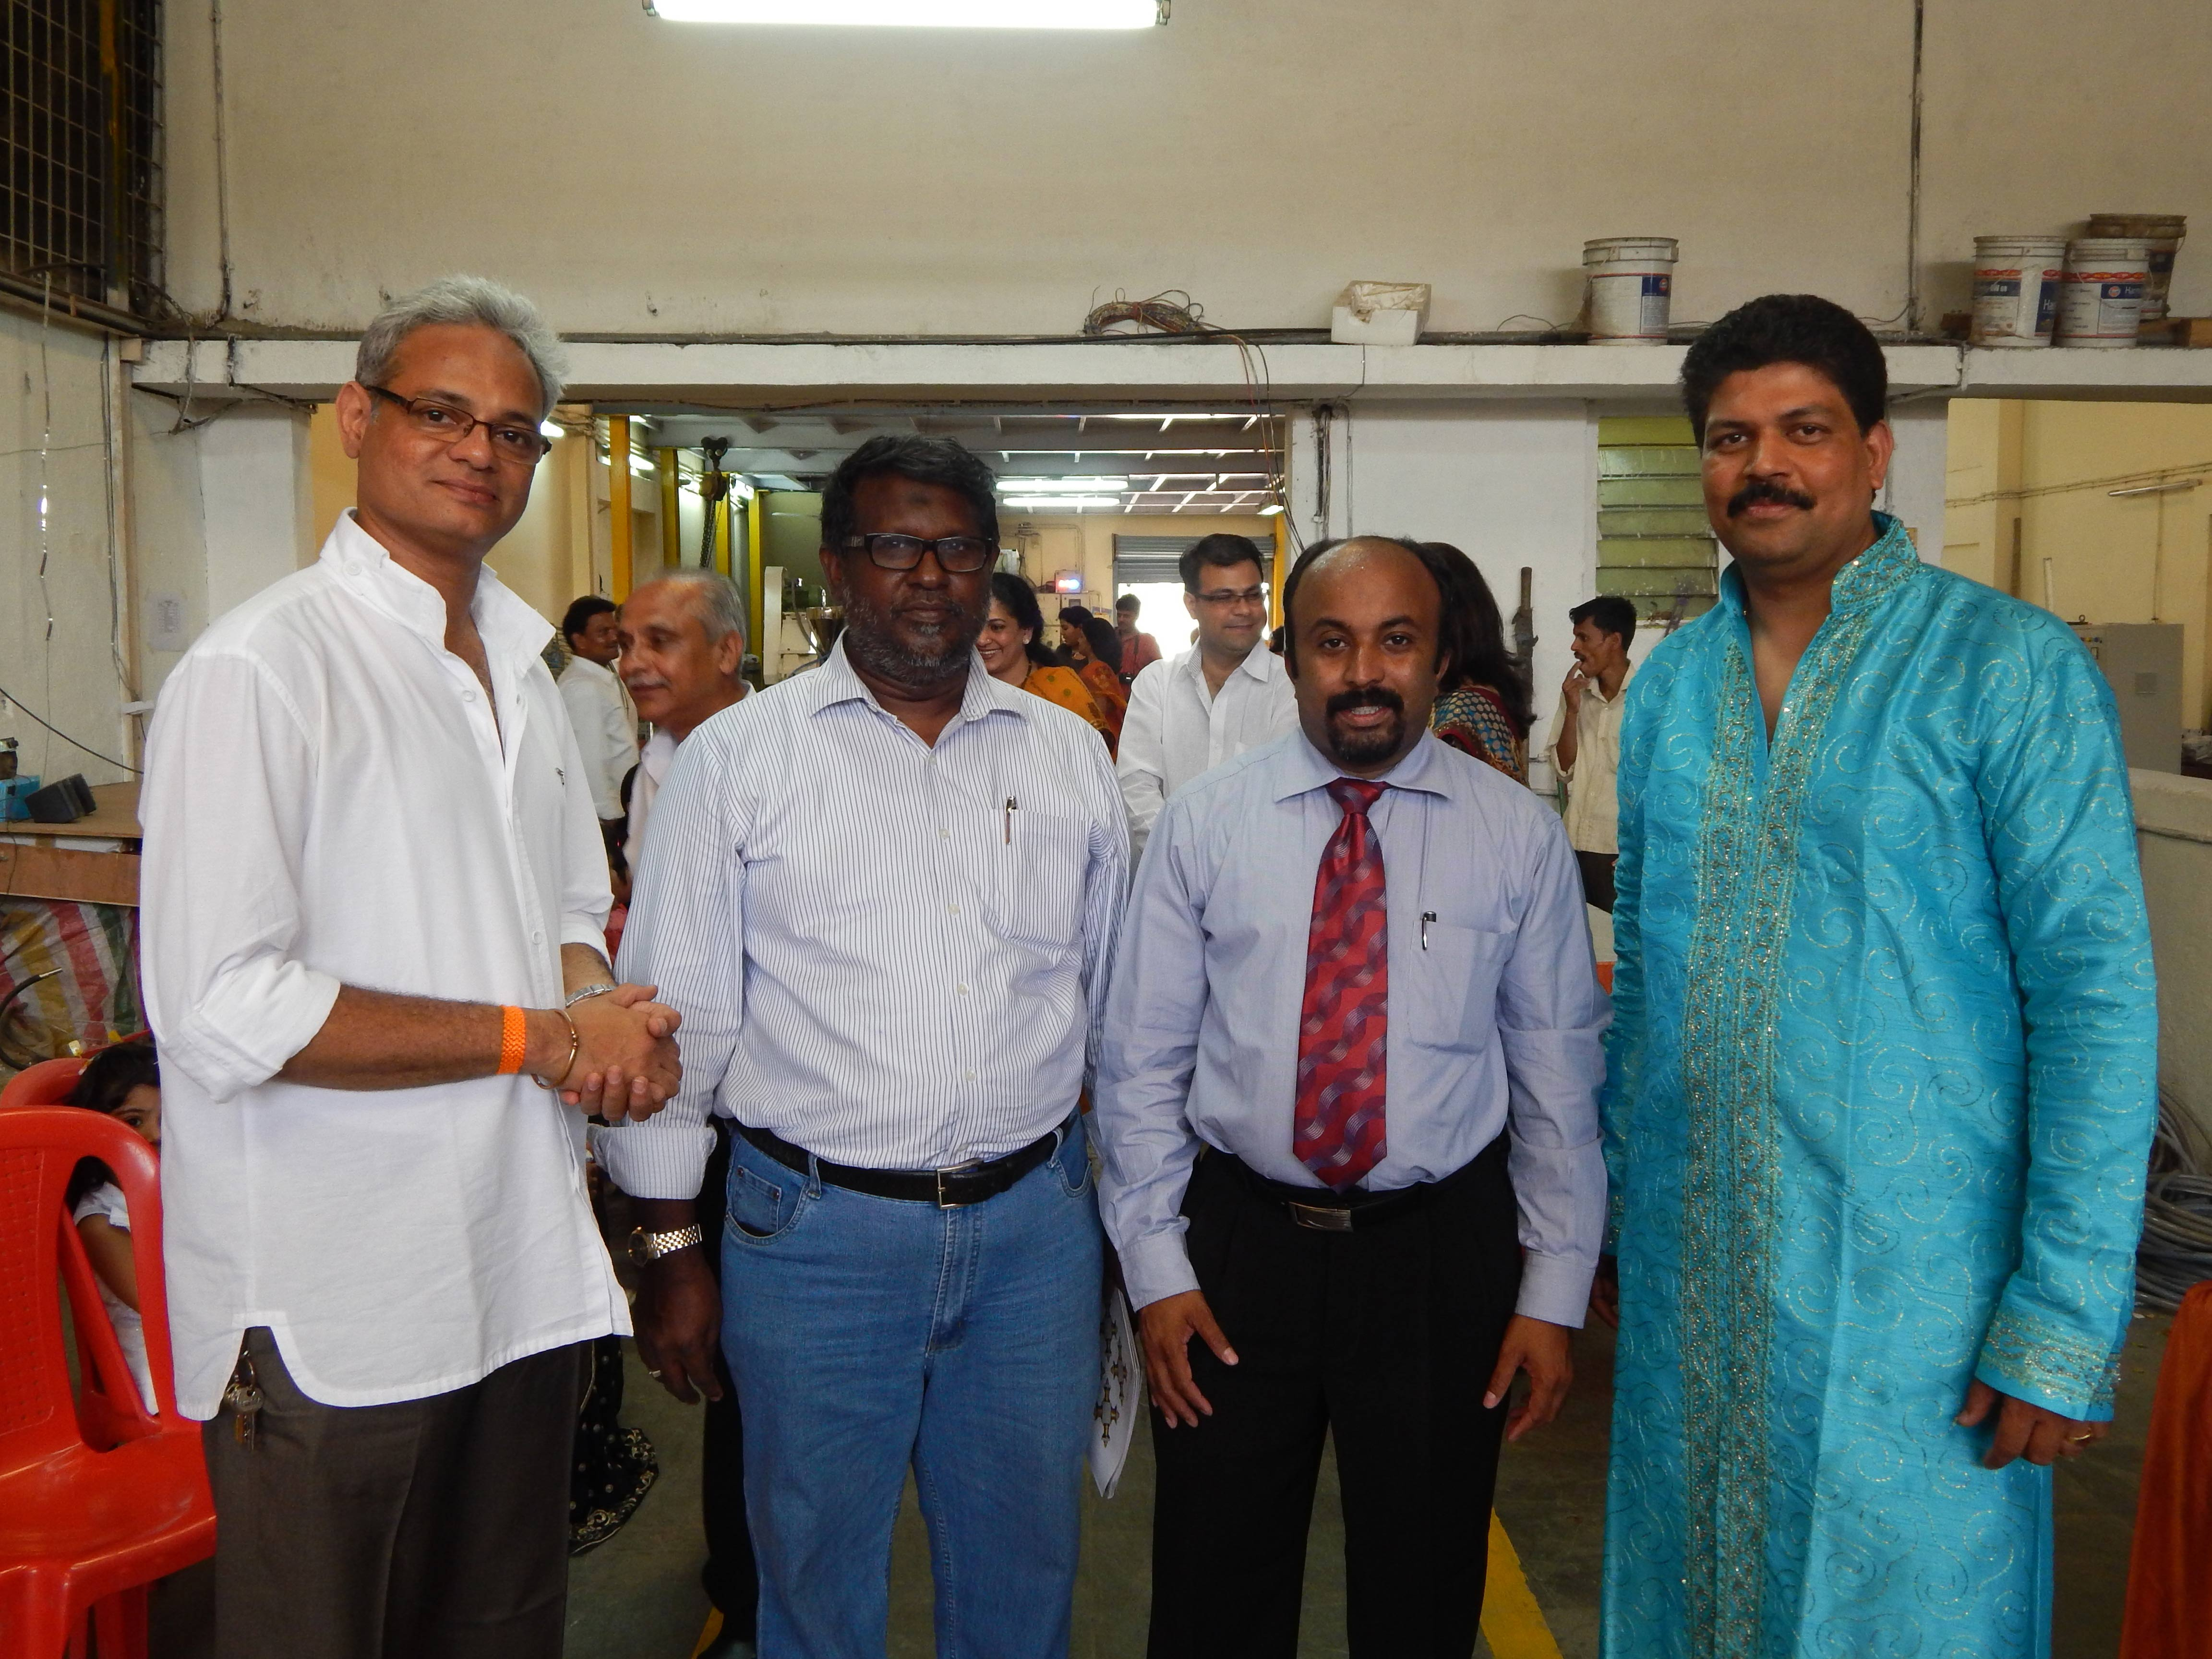 SMART'S GRAND OPENING OF PLASTICS BLOW MOULDING MANUFACTURING